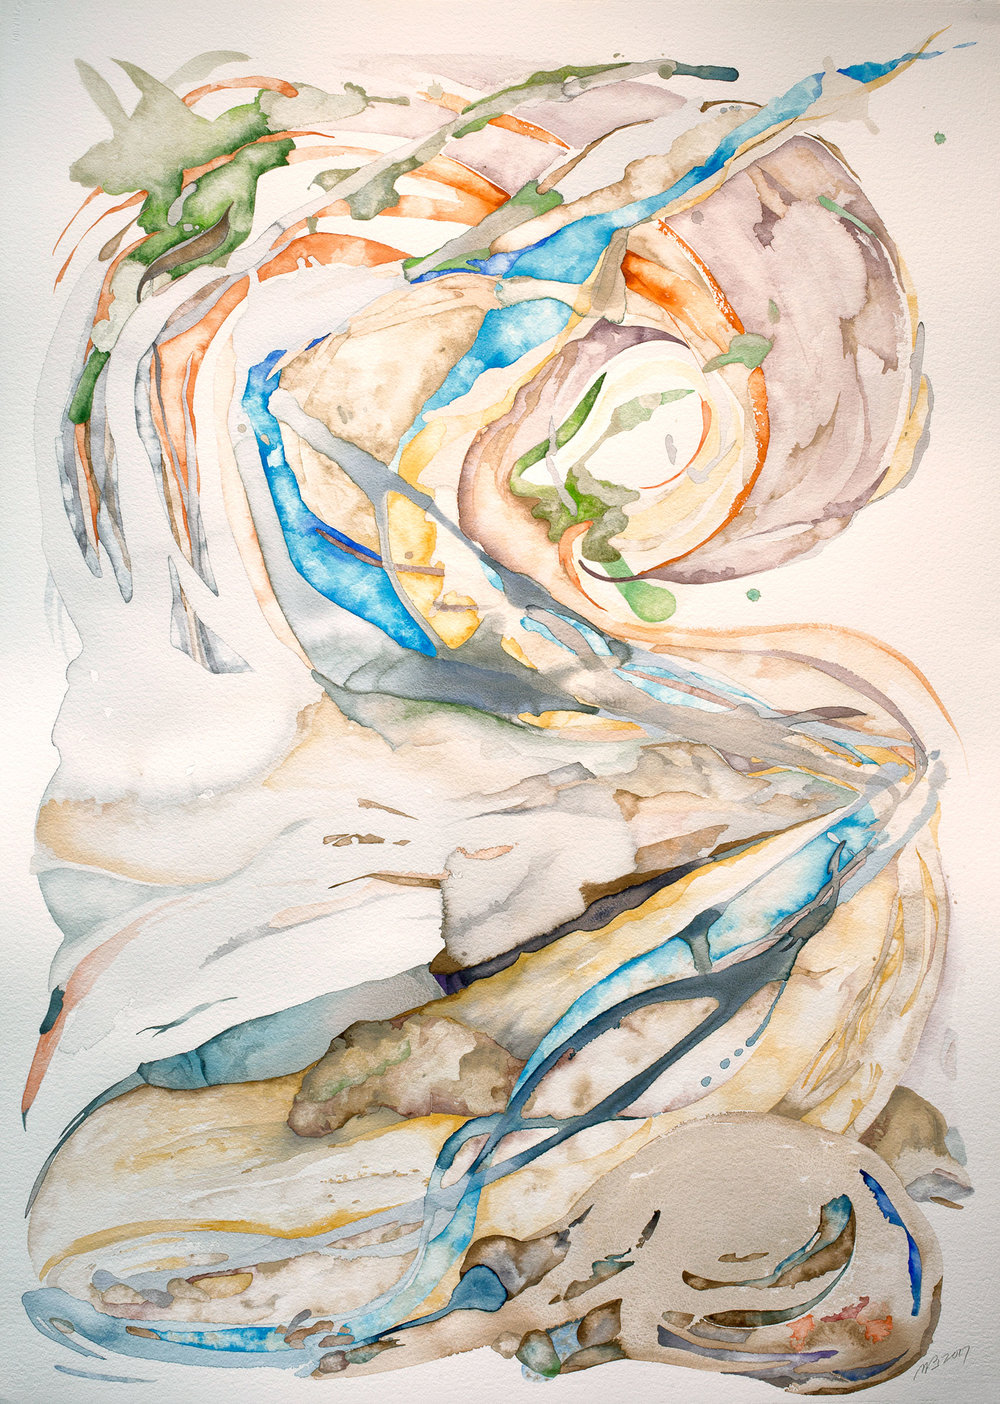 Braided Bed , 2017, watercolor on watercolor paper, 41 x 29.5 in.